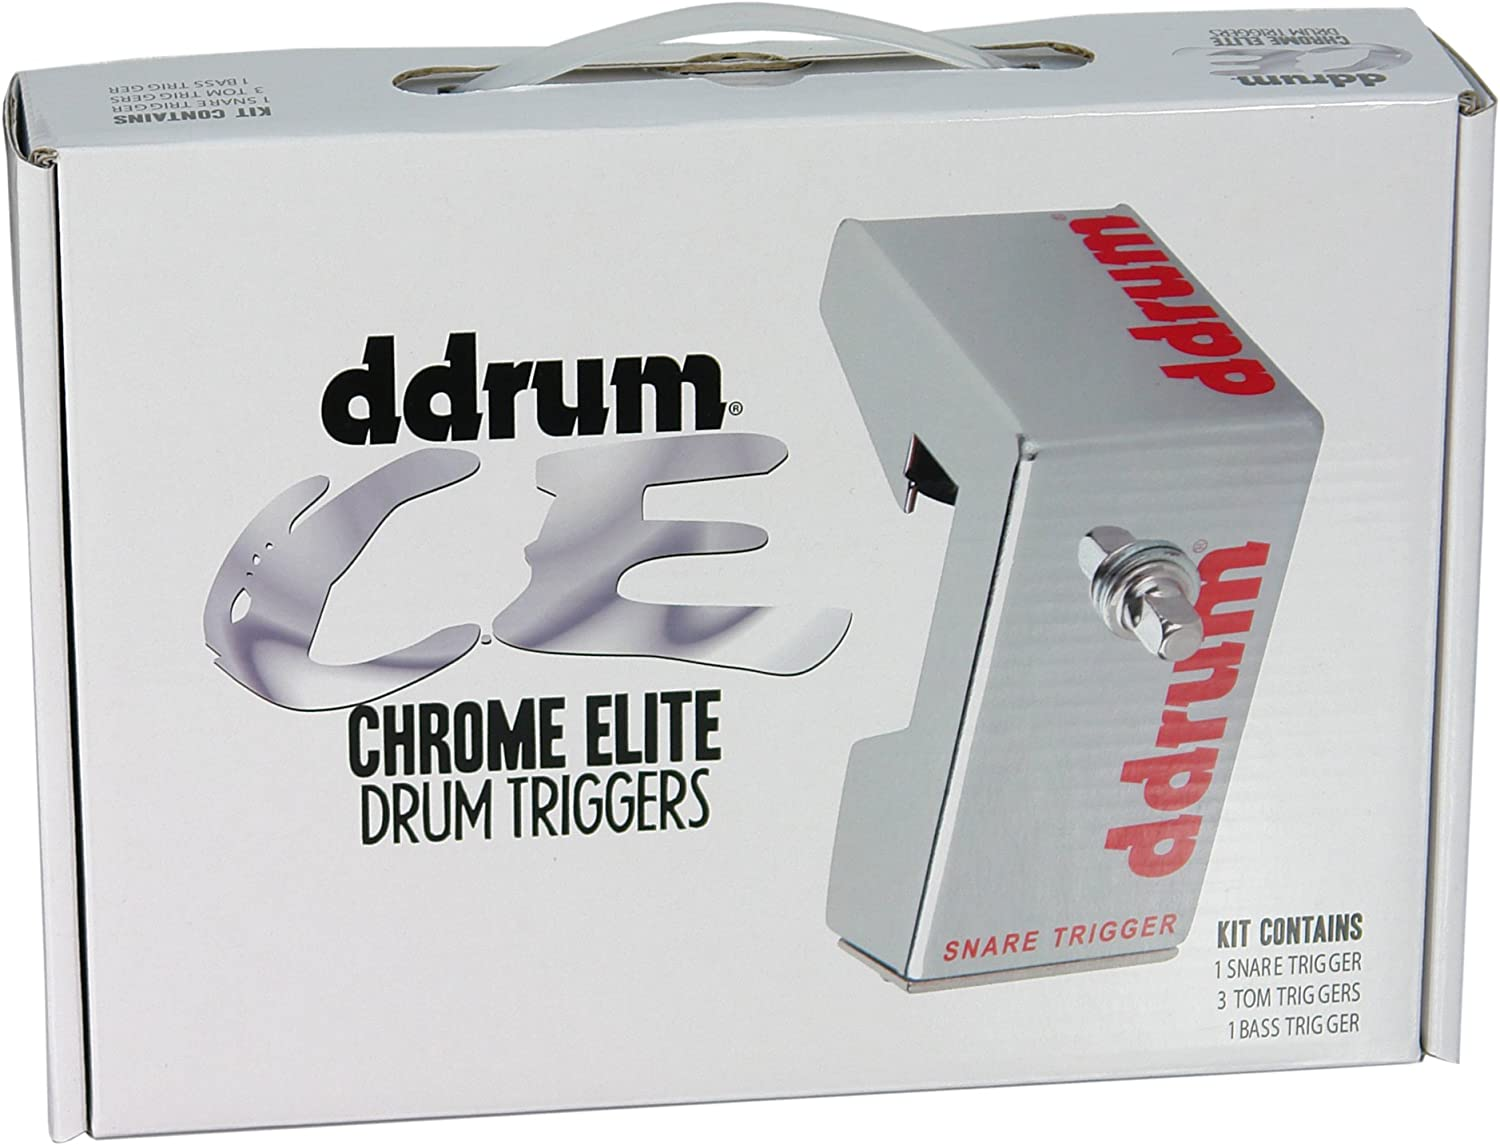 dDrum High Quality Replacement Transducer Accessory for Chrome Elite Triggers